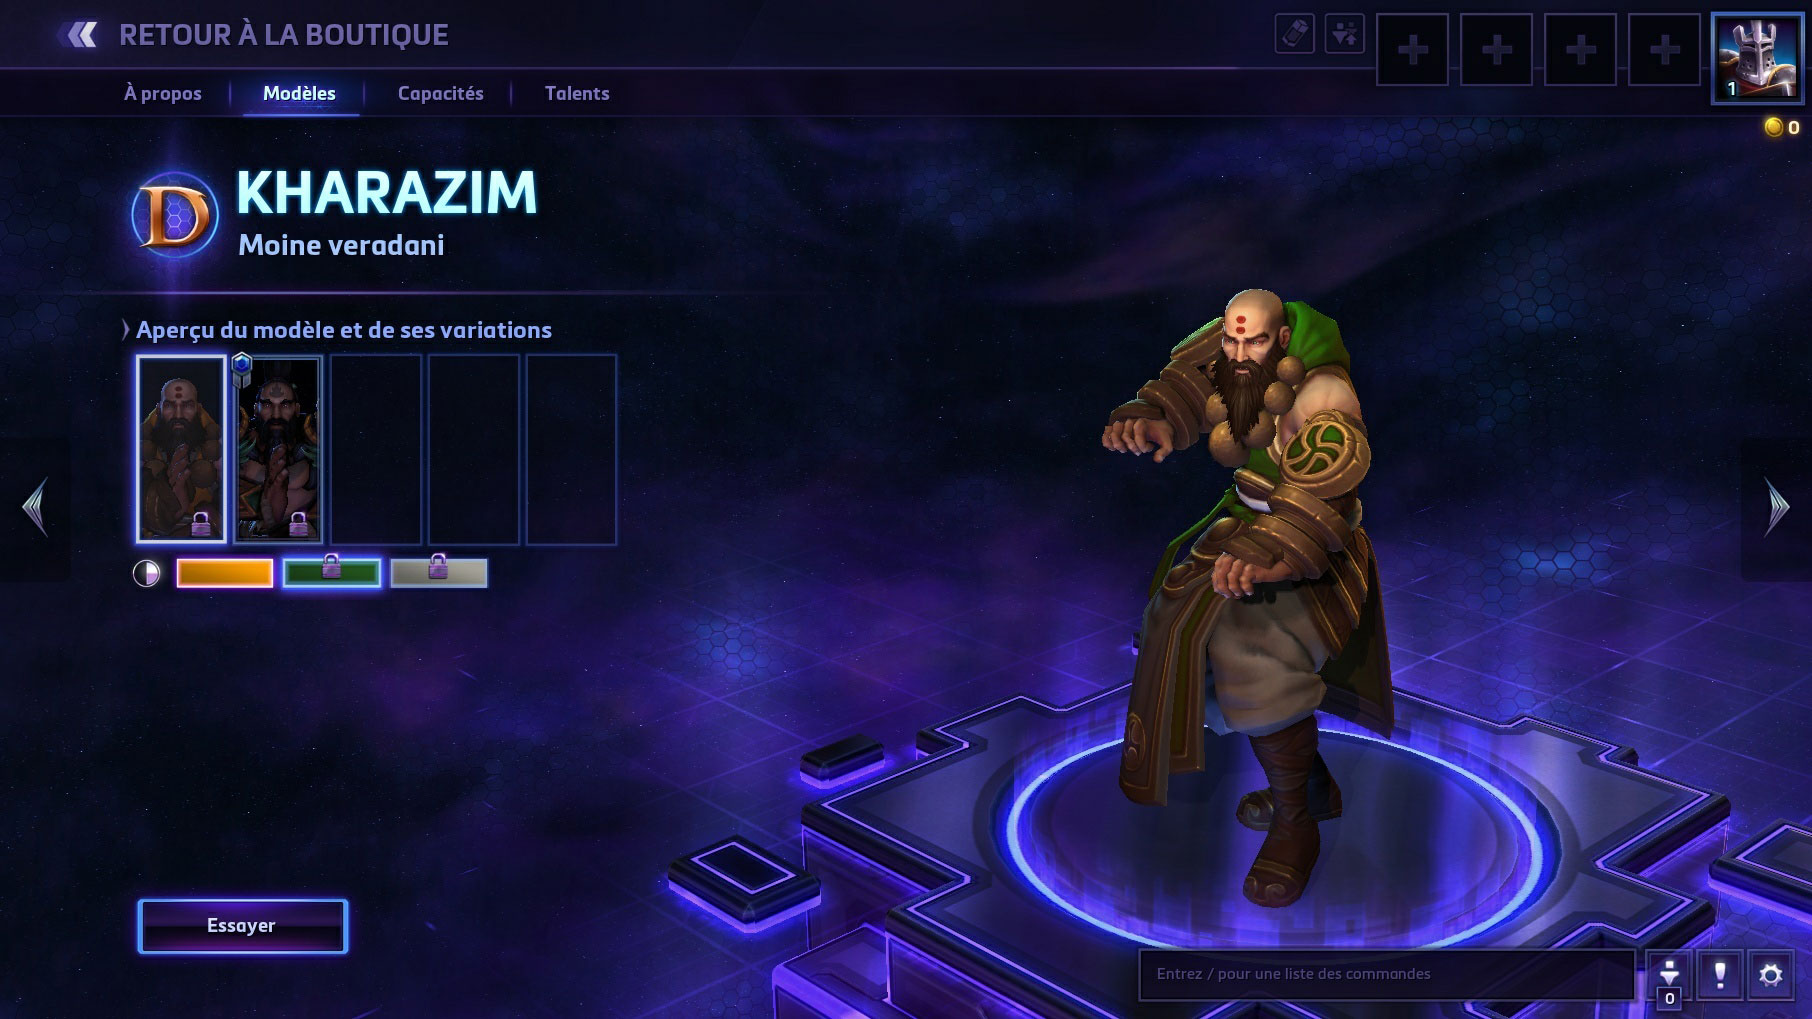 Apparence de Kharazim dans Heroes of the Storm.